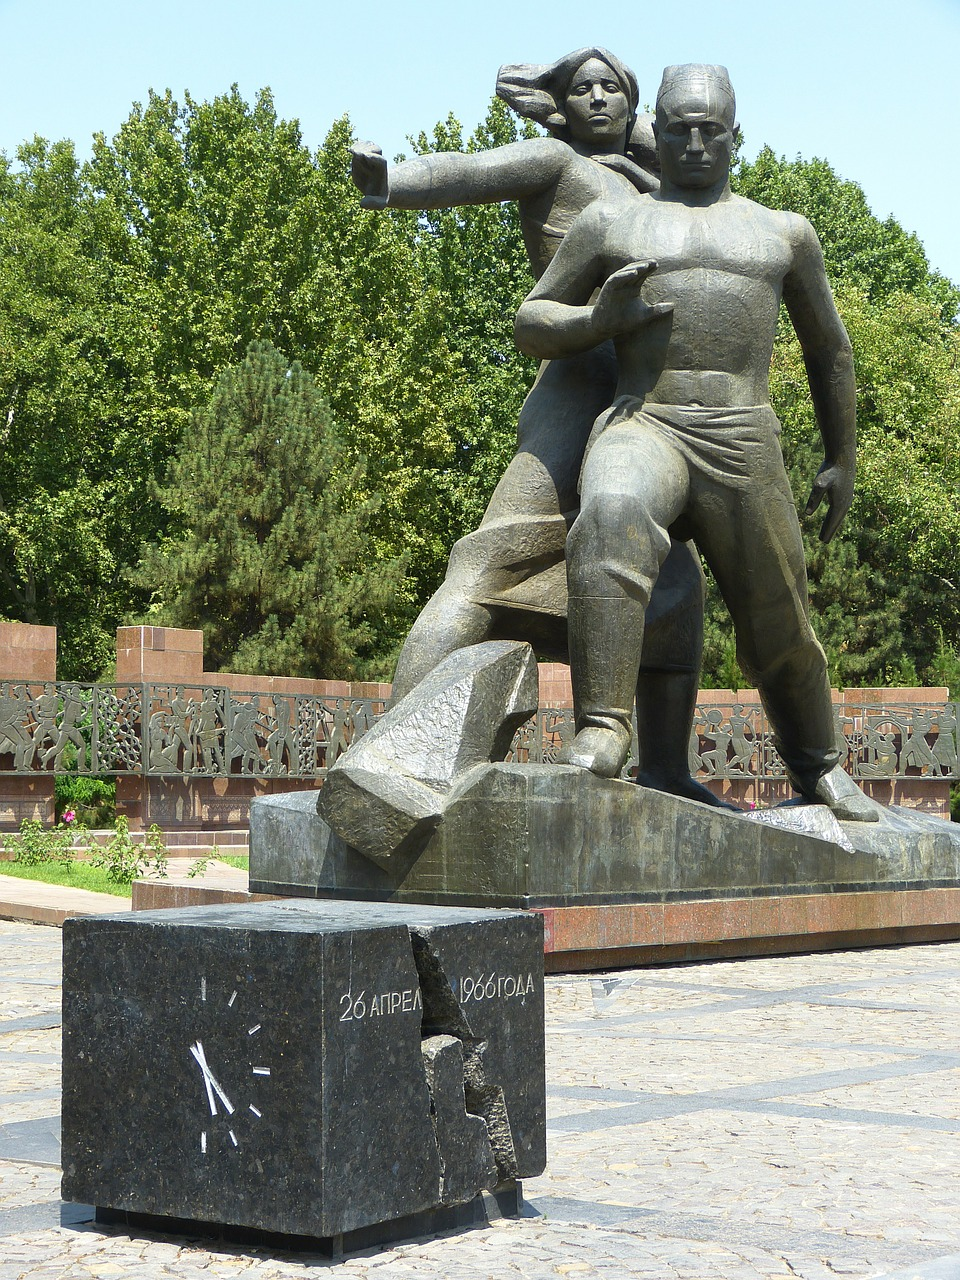 tashkent monument earthquake free photo